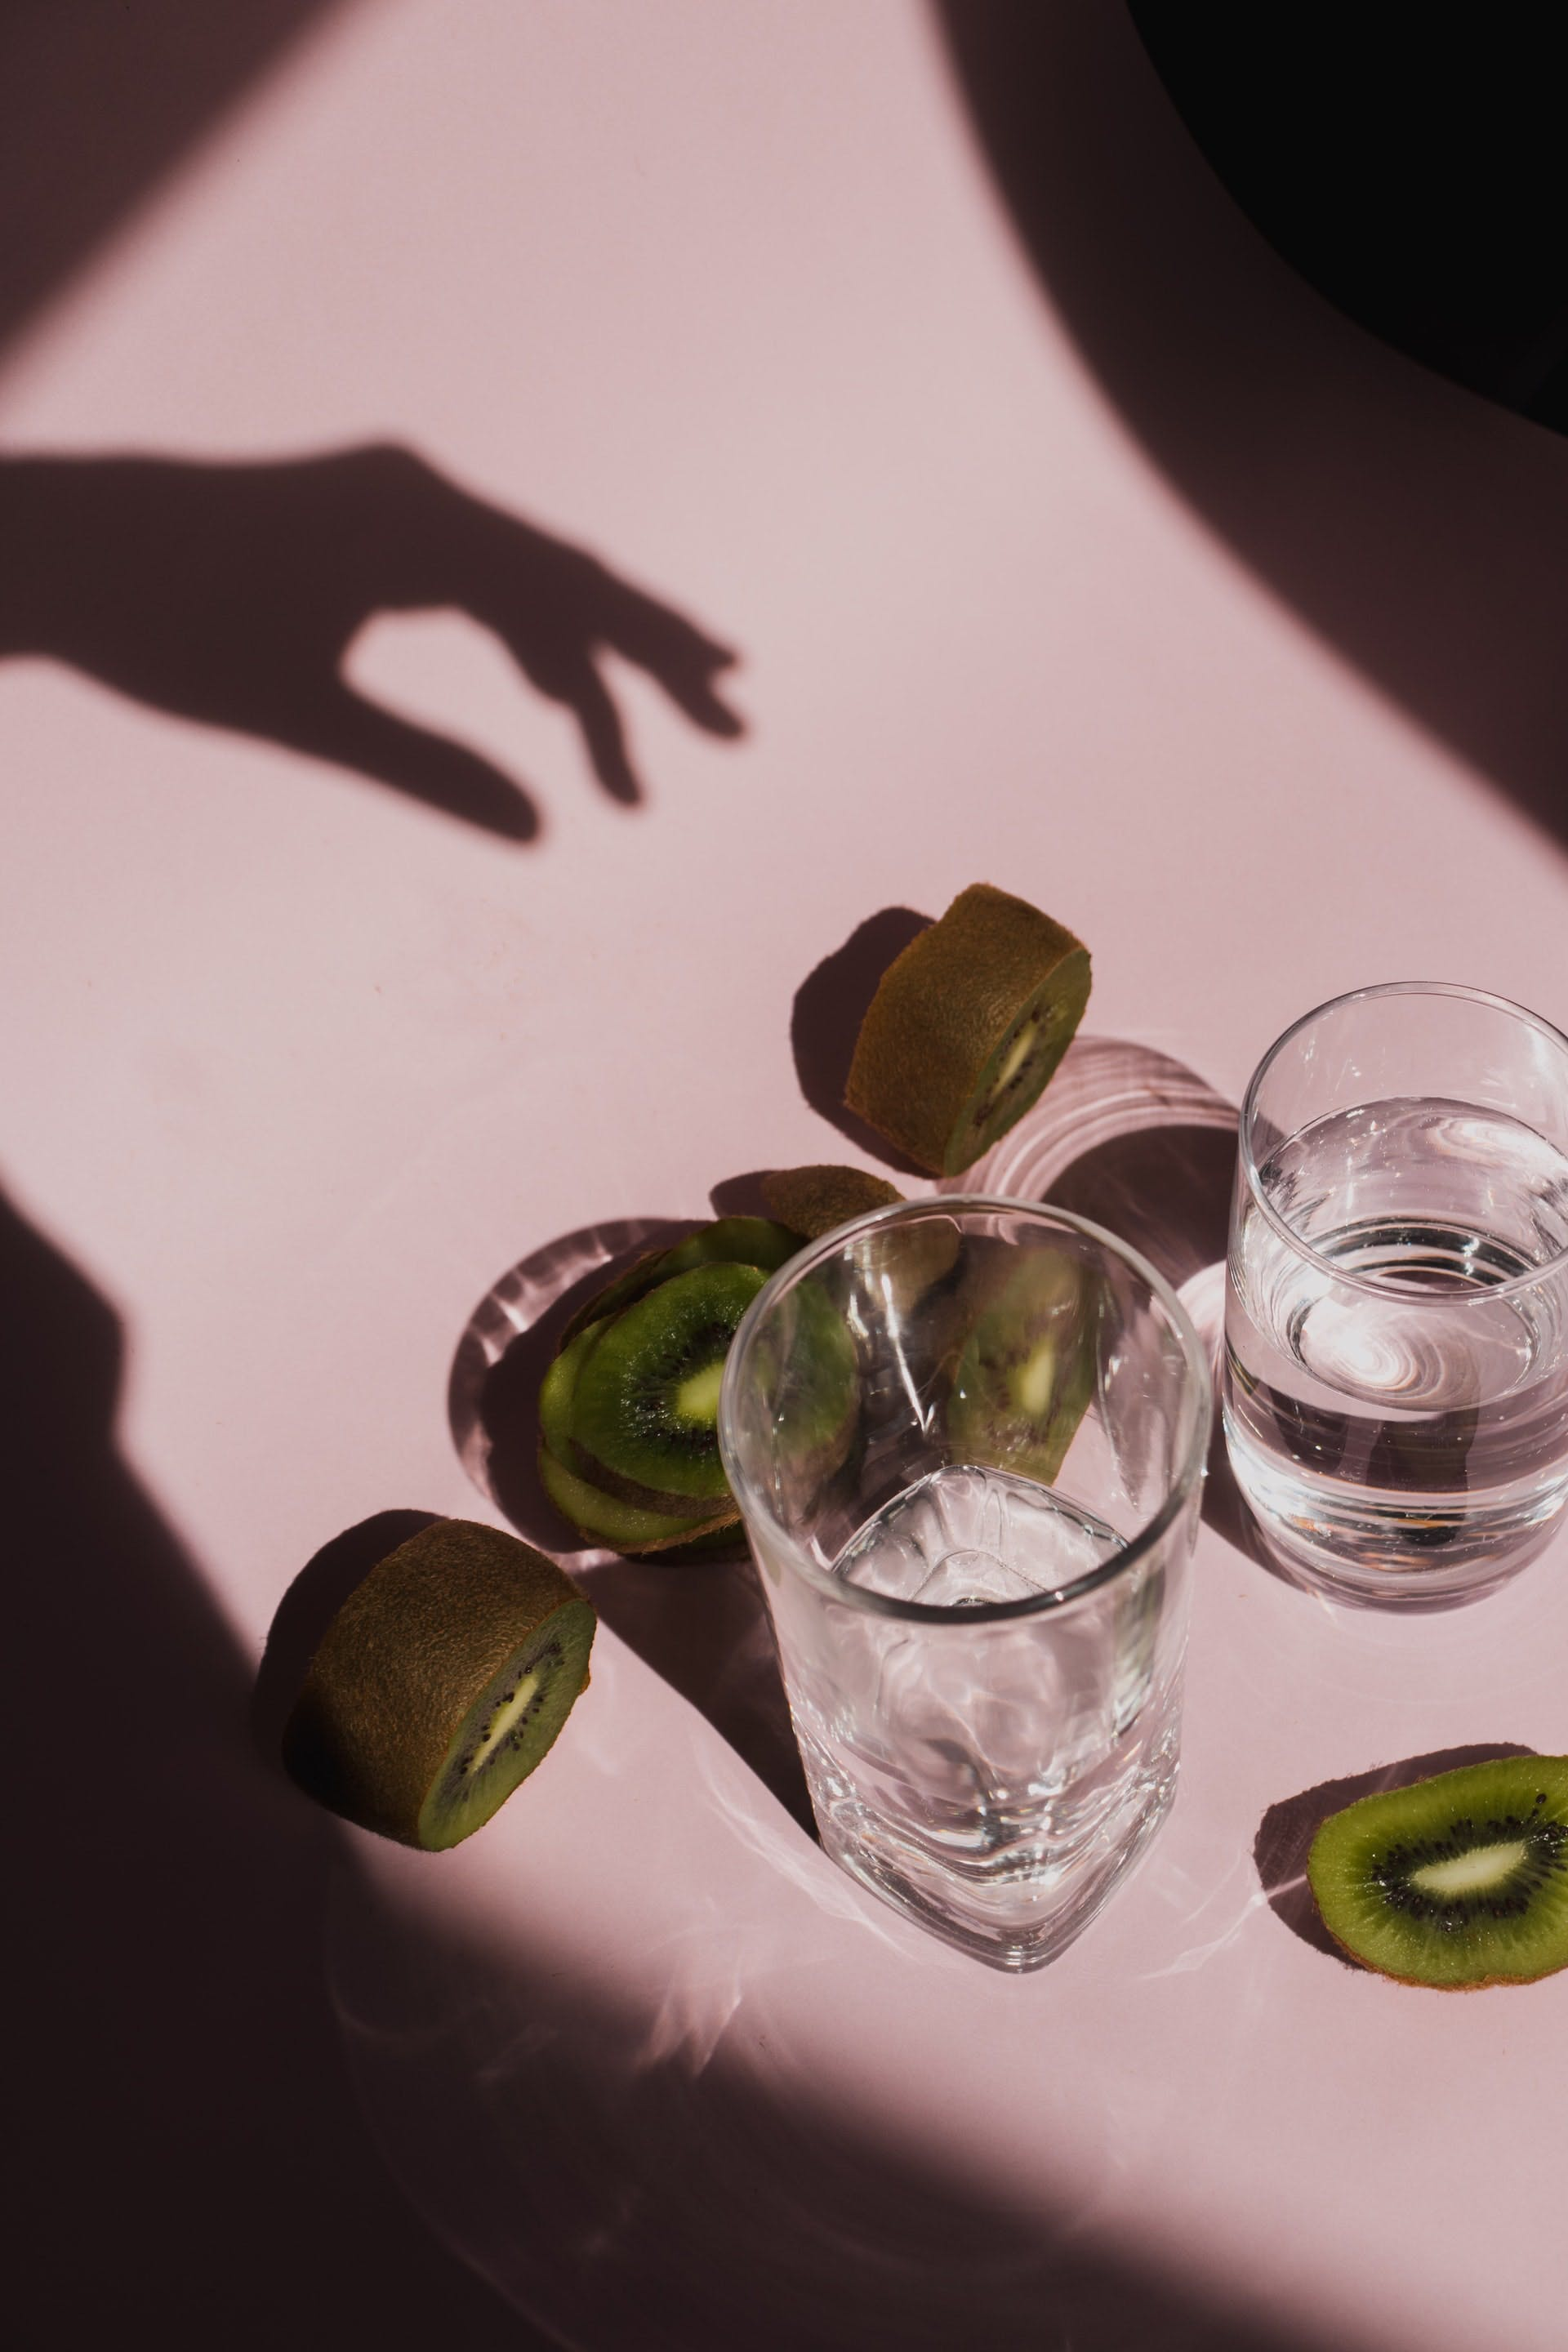 kiwi and glasses of water